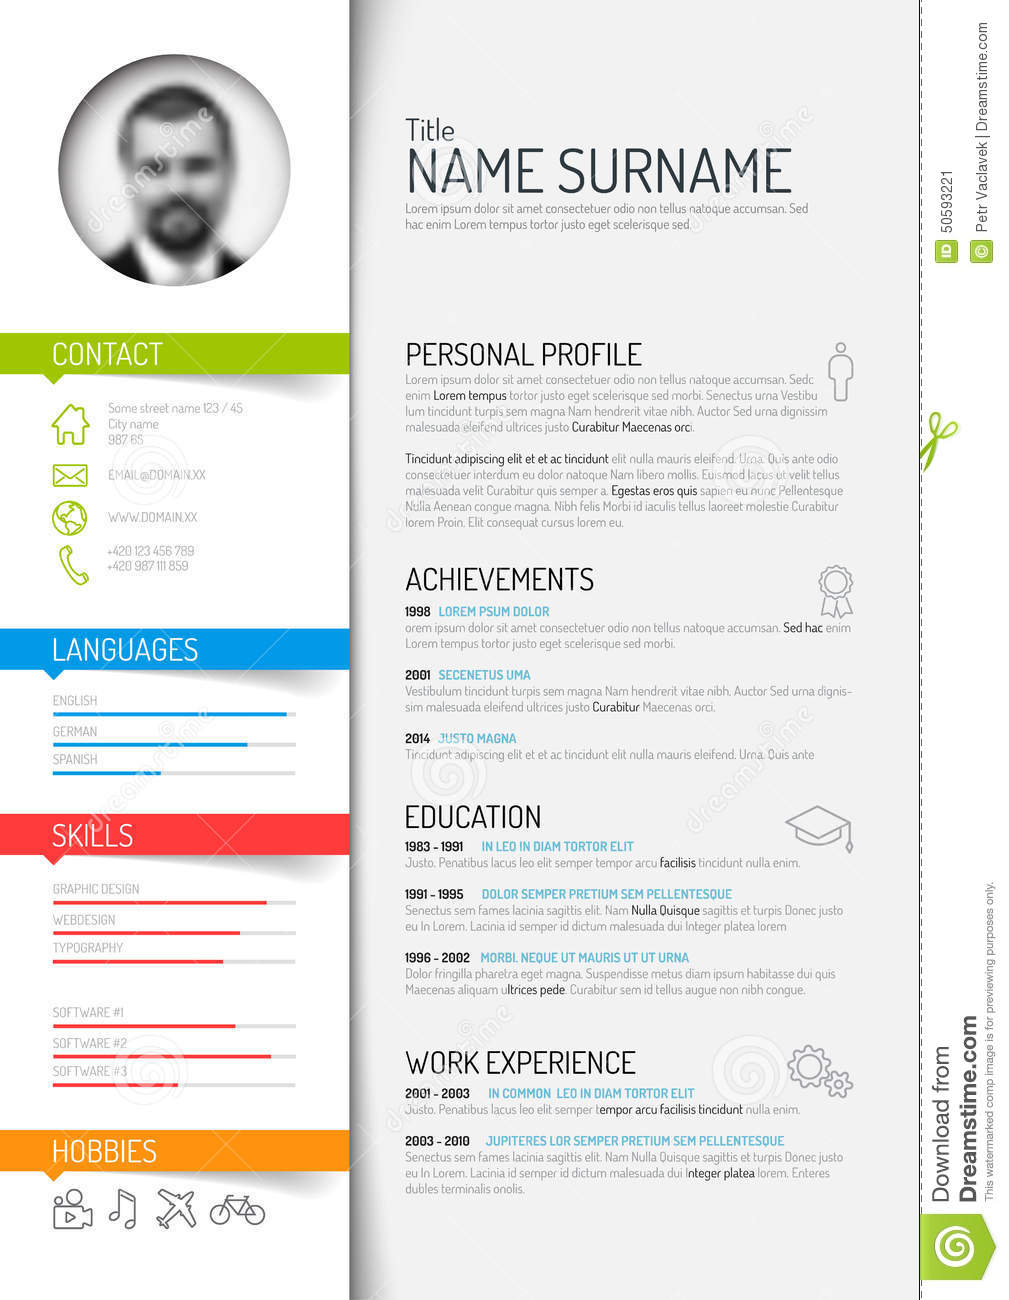 Cv / Resume Template  Is A Cv The Same As A Resume